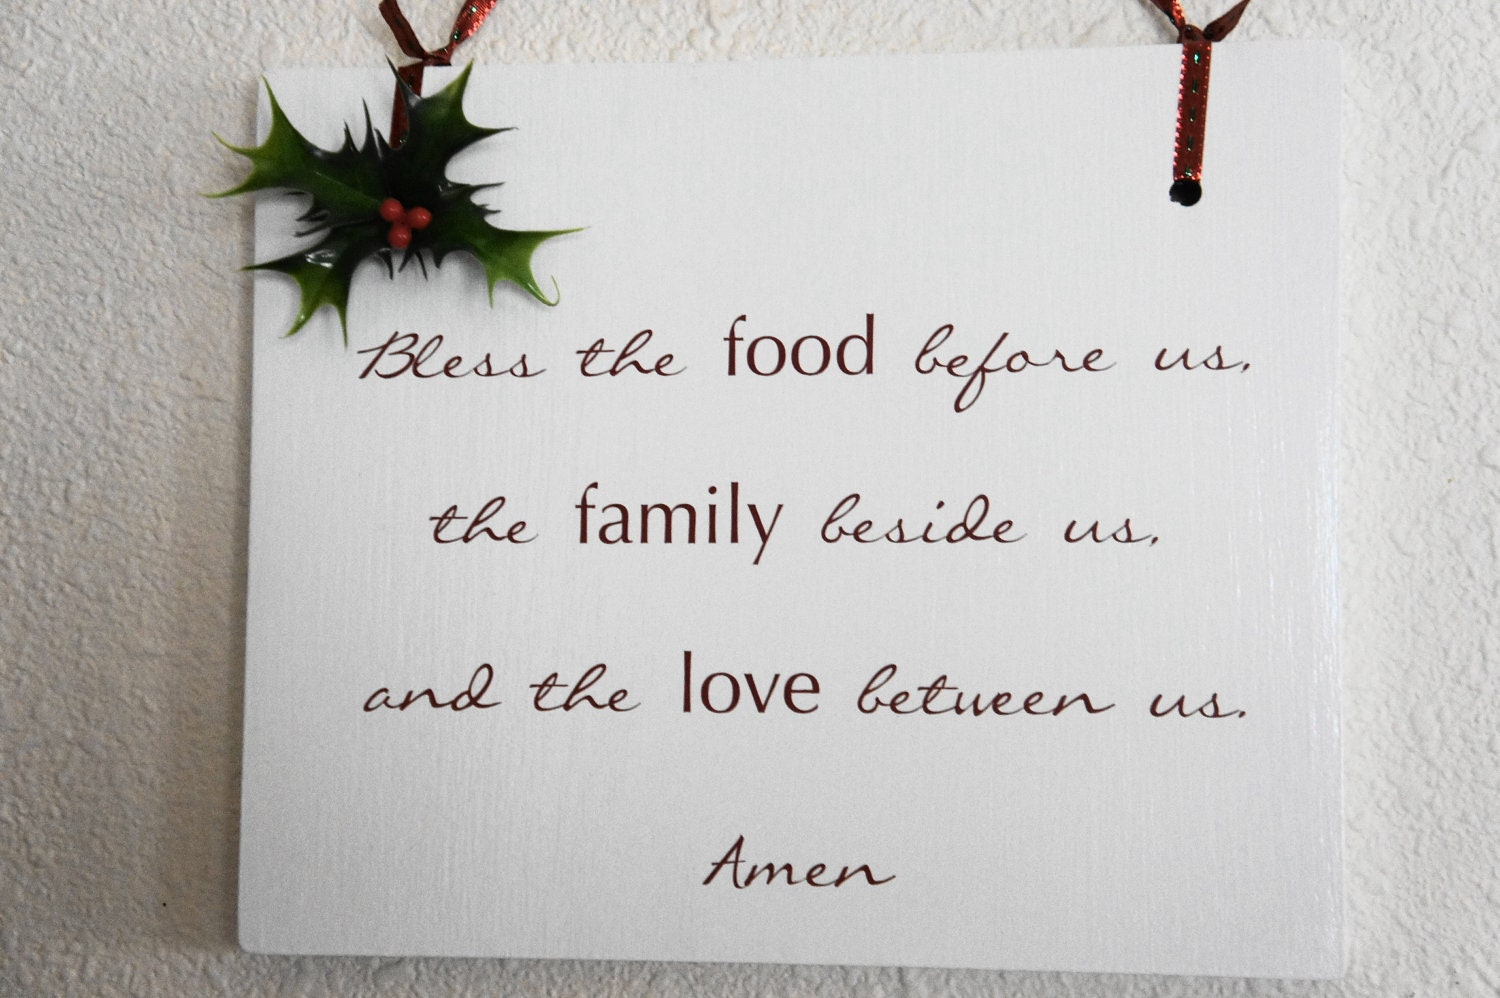 Ooak Christmas Prayer Bless Food Family Love Amen Hanging Wood